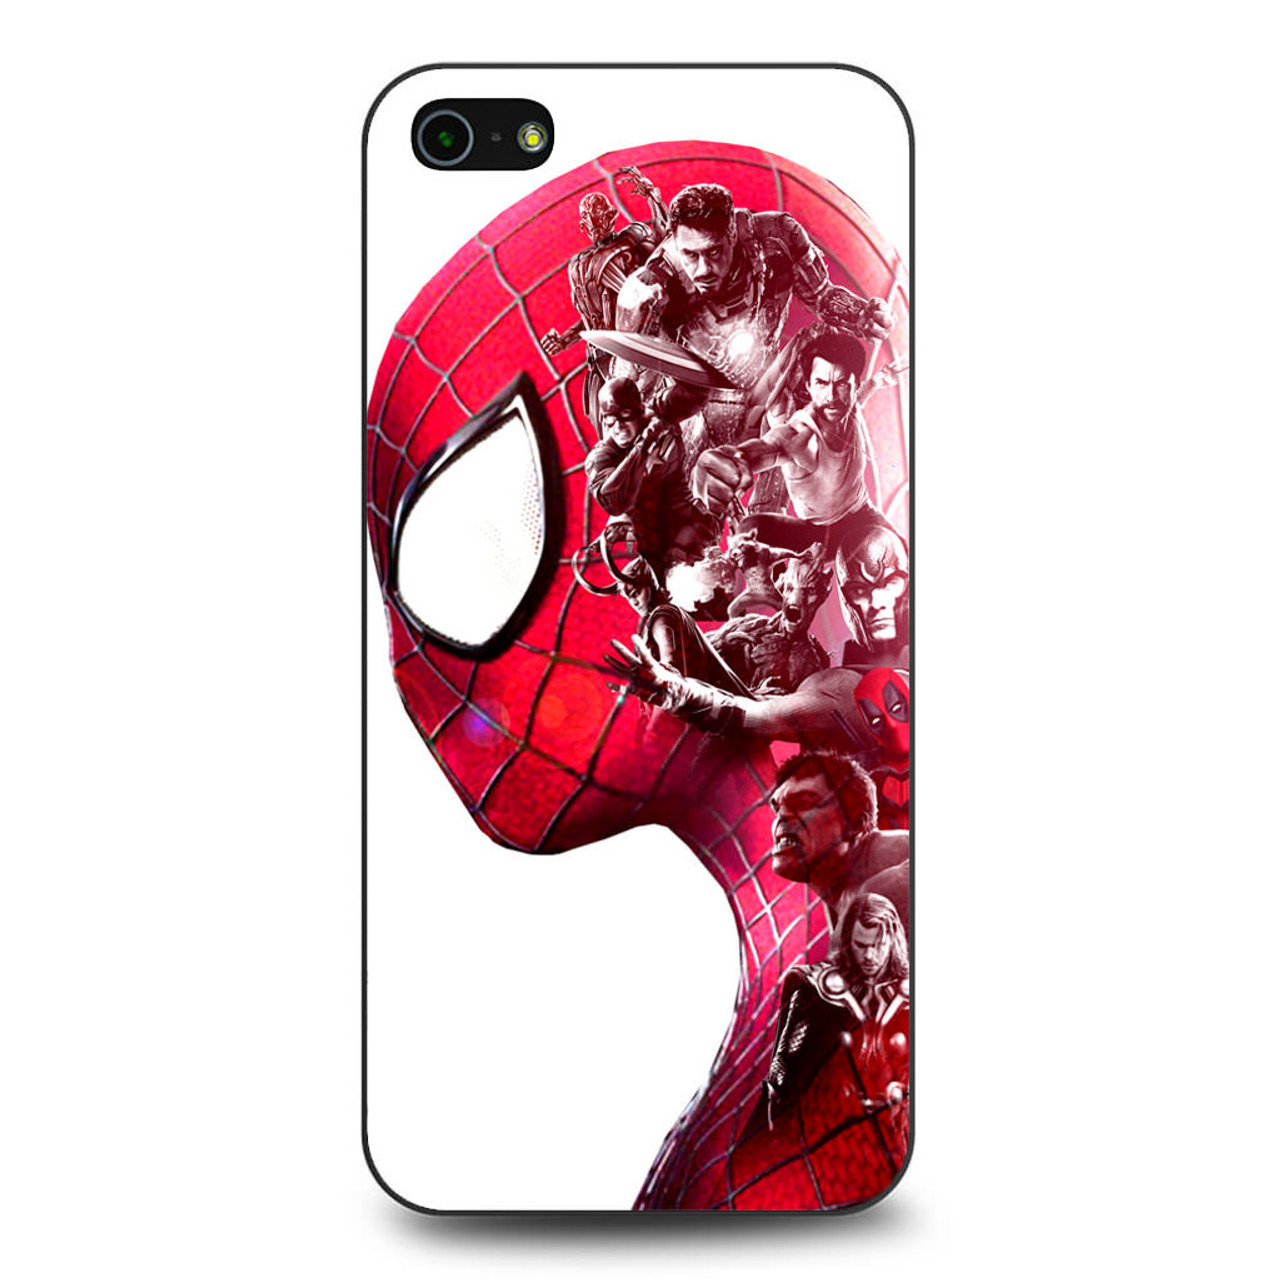 buy online d19da ad721 Spiderman Superheroes Marvel iPhone 5/5S/SE Case